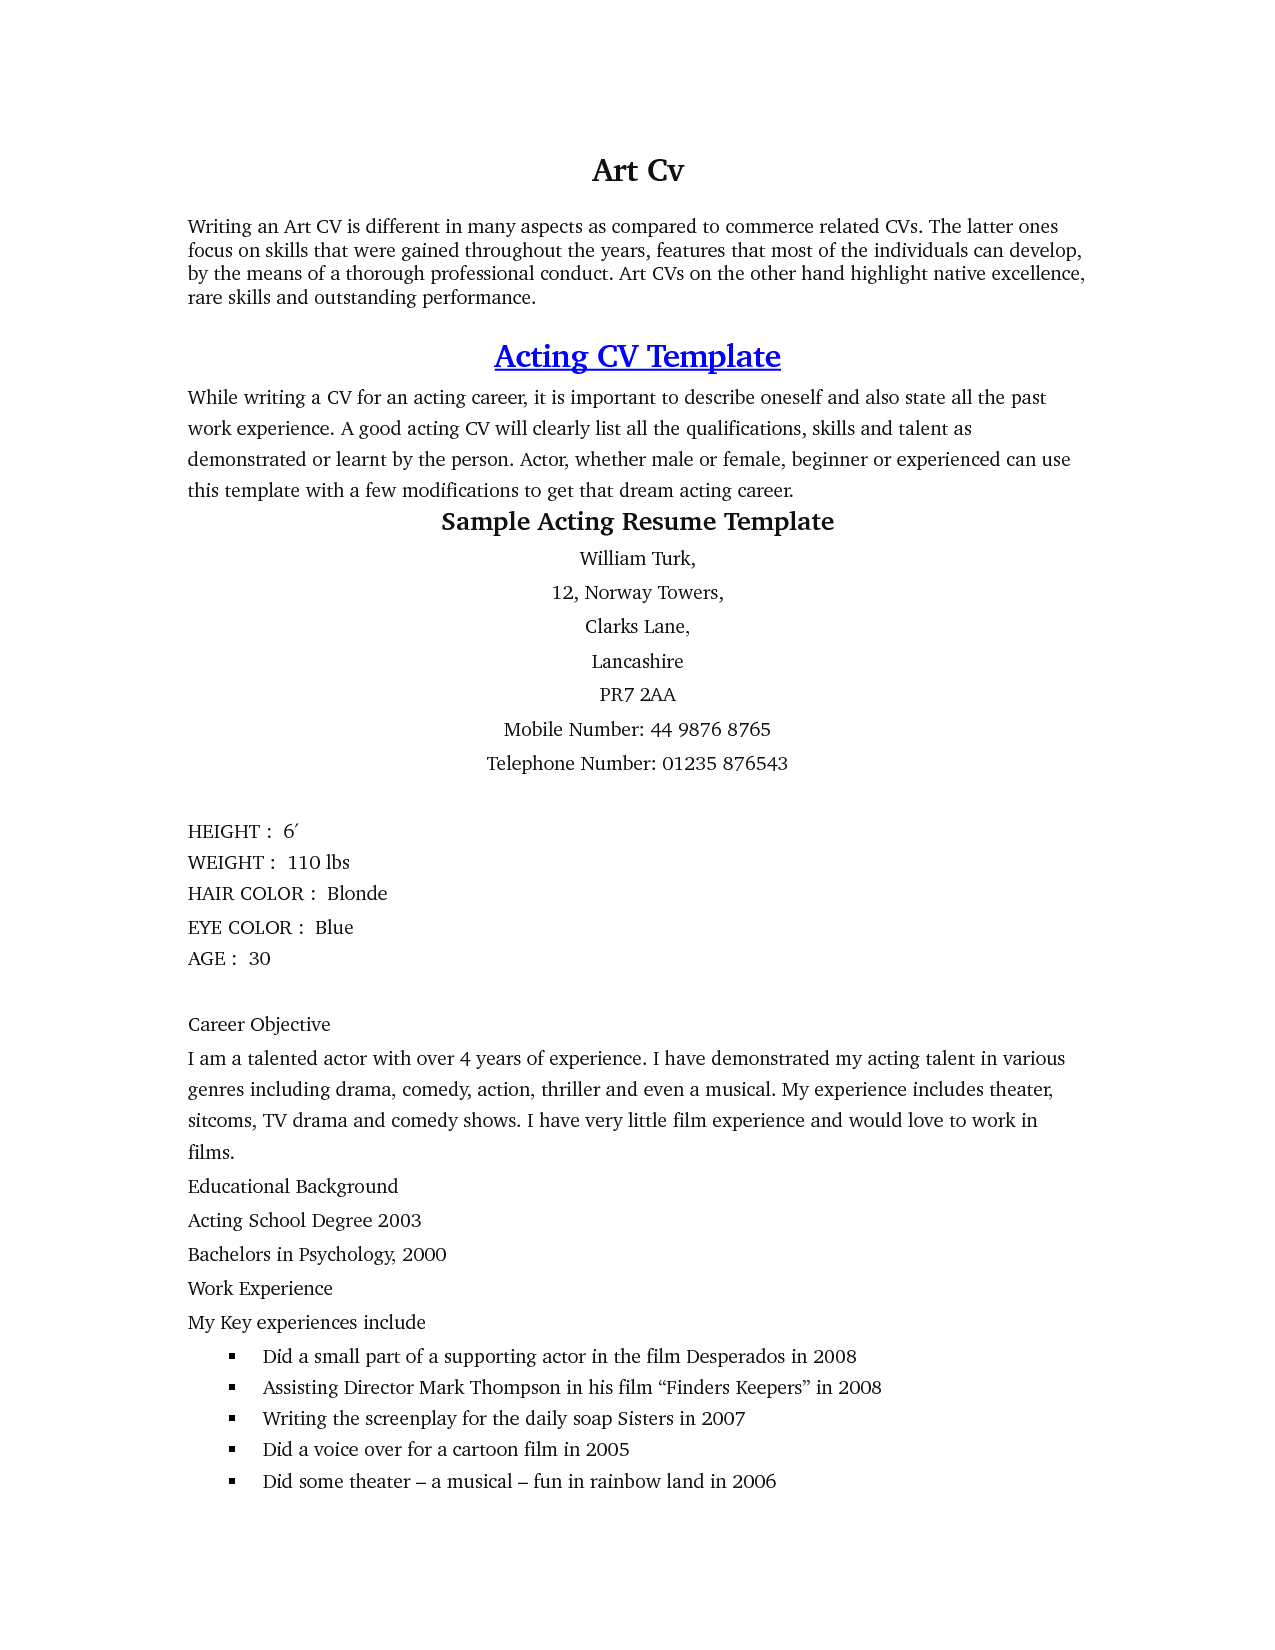 Acting Resume Sample Beginner   Http://www.resumecareer.info/acting  Acting Resume For Beginners